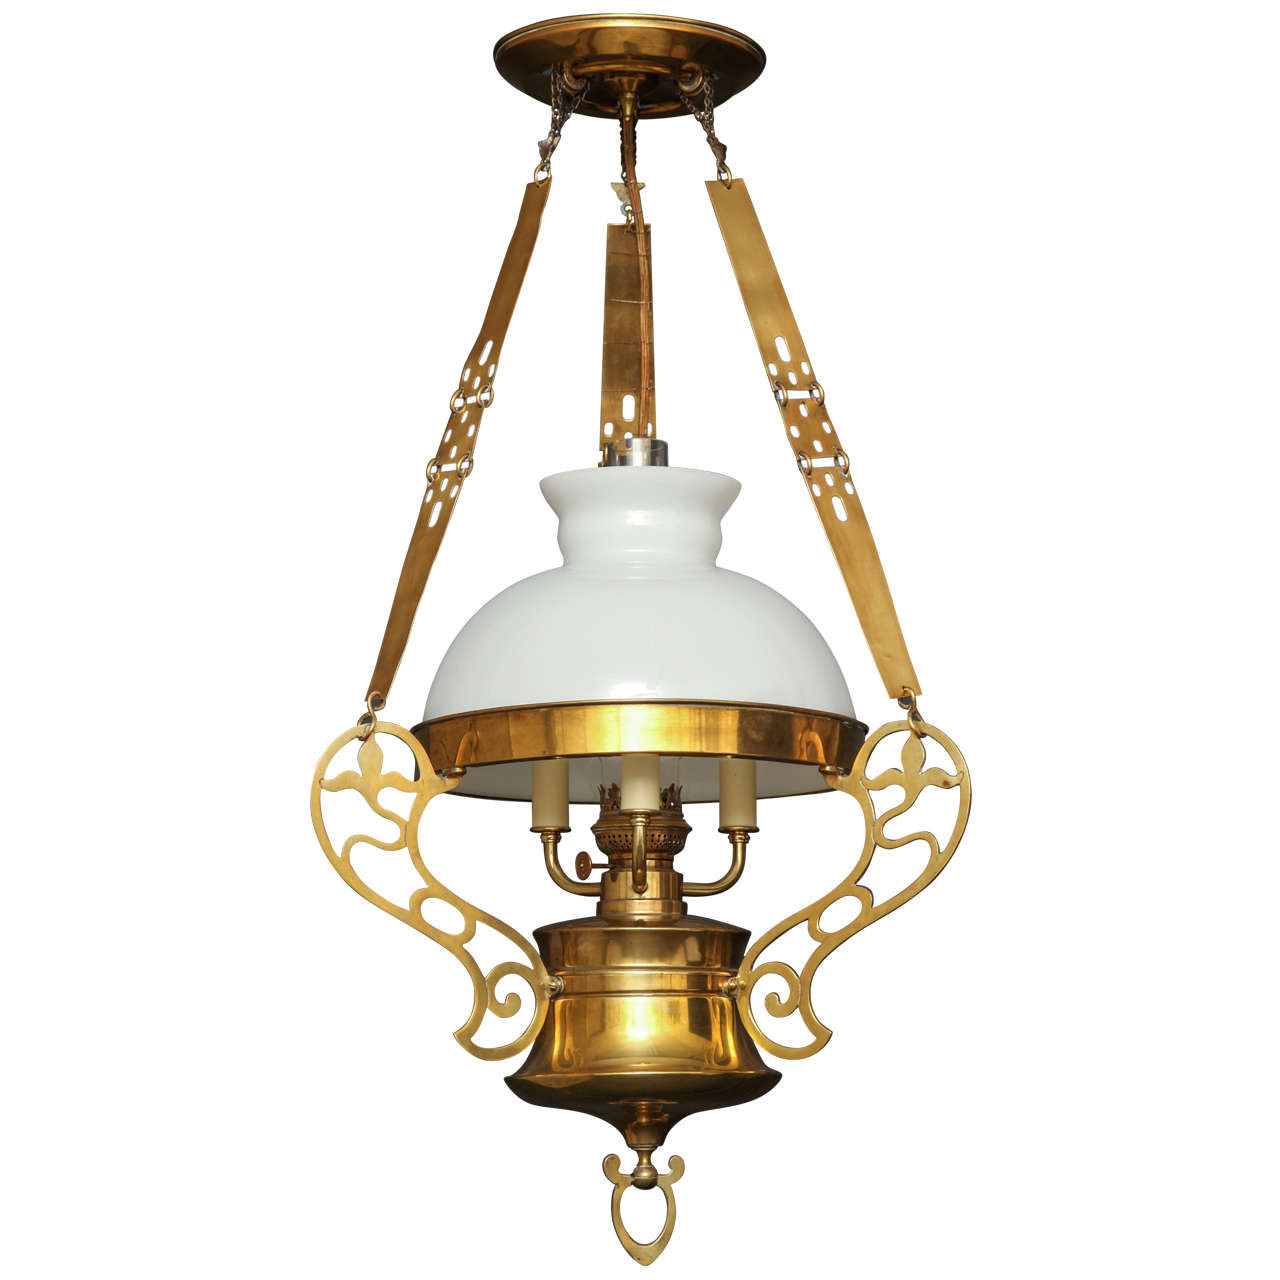 Arts and Crafts Brass Chandelier with Opaline Glass Shade